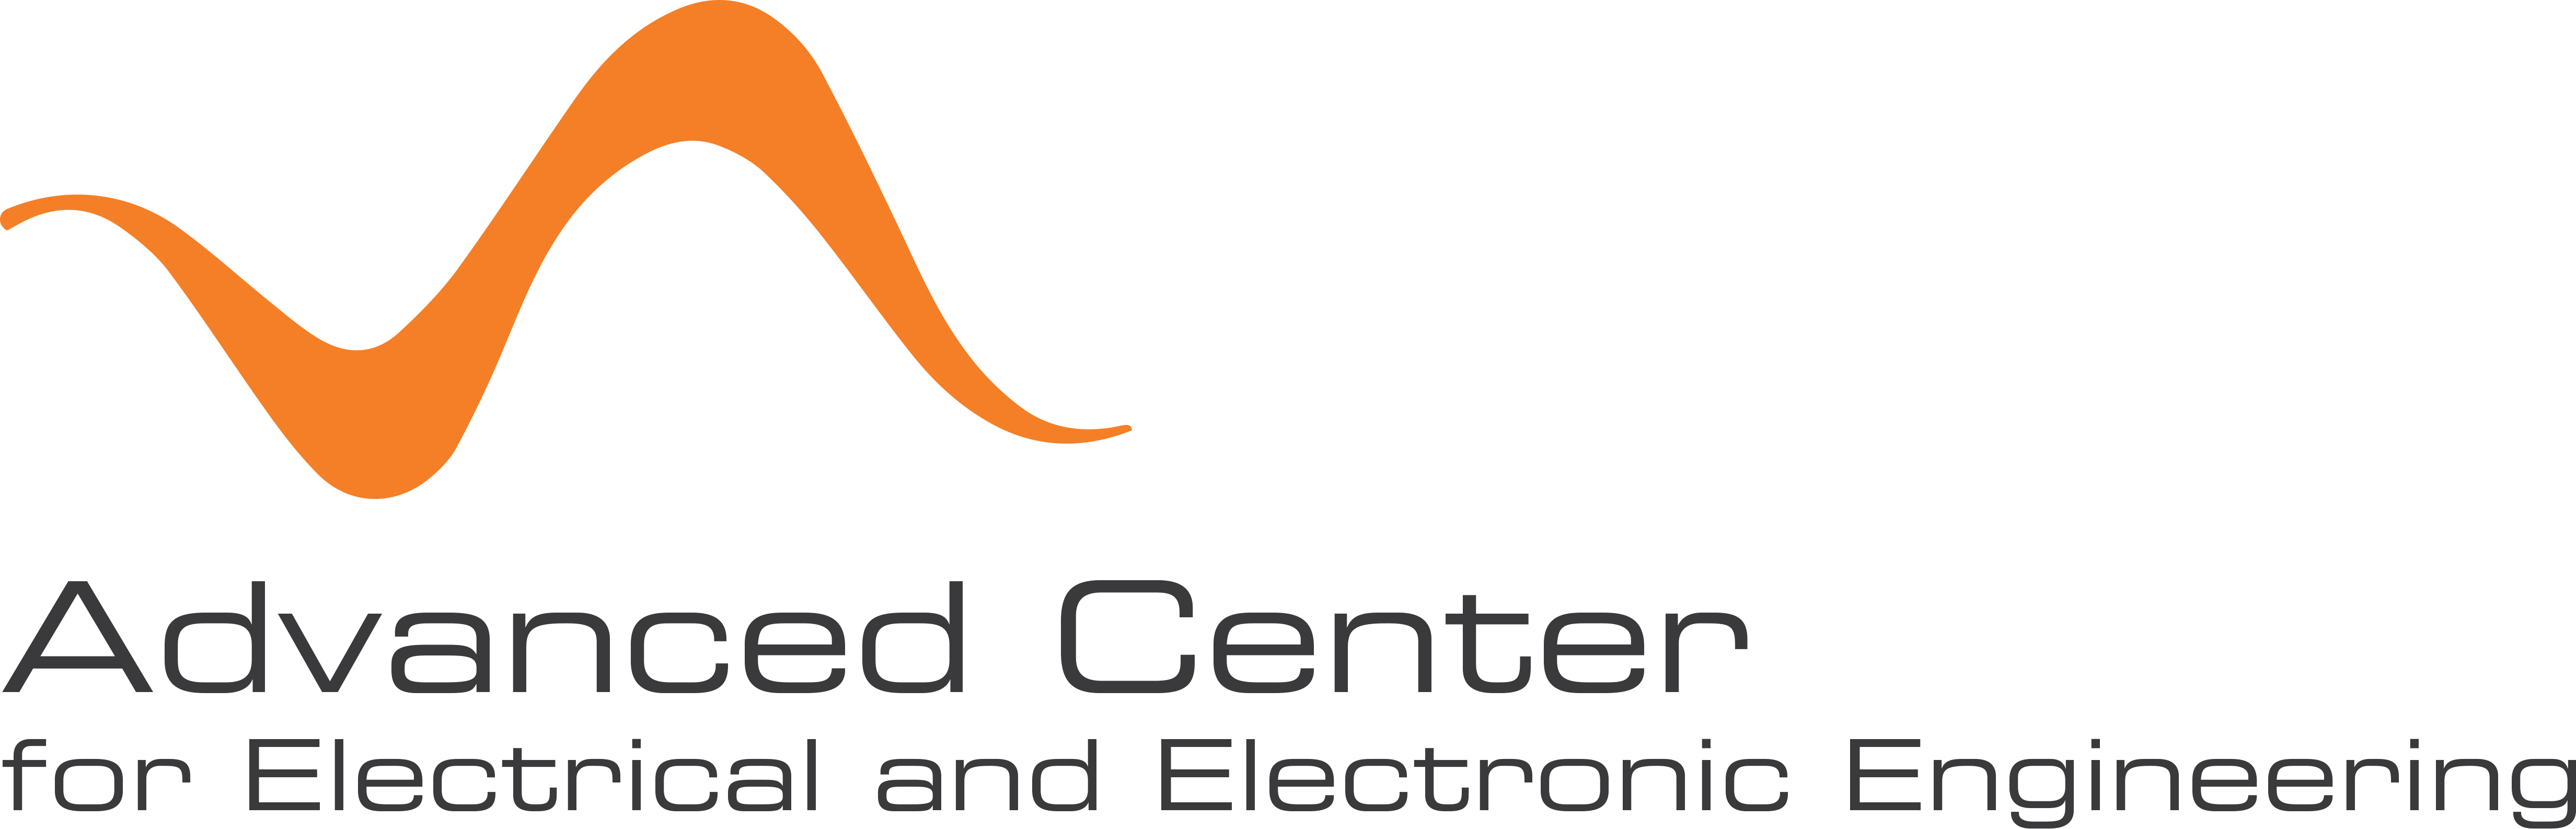 Advanced Center of Electrical and Electronic Engineering